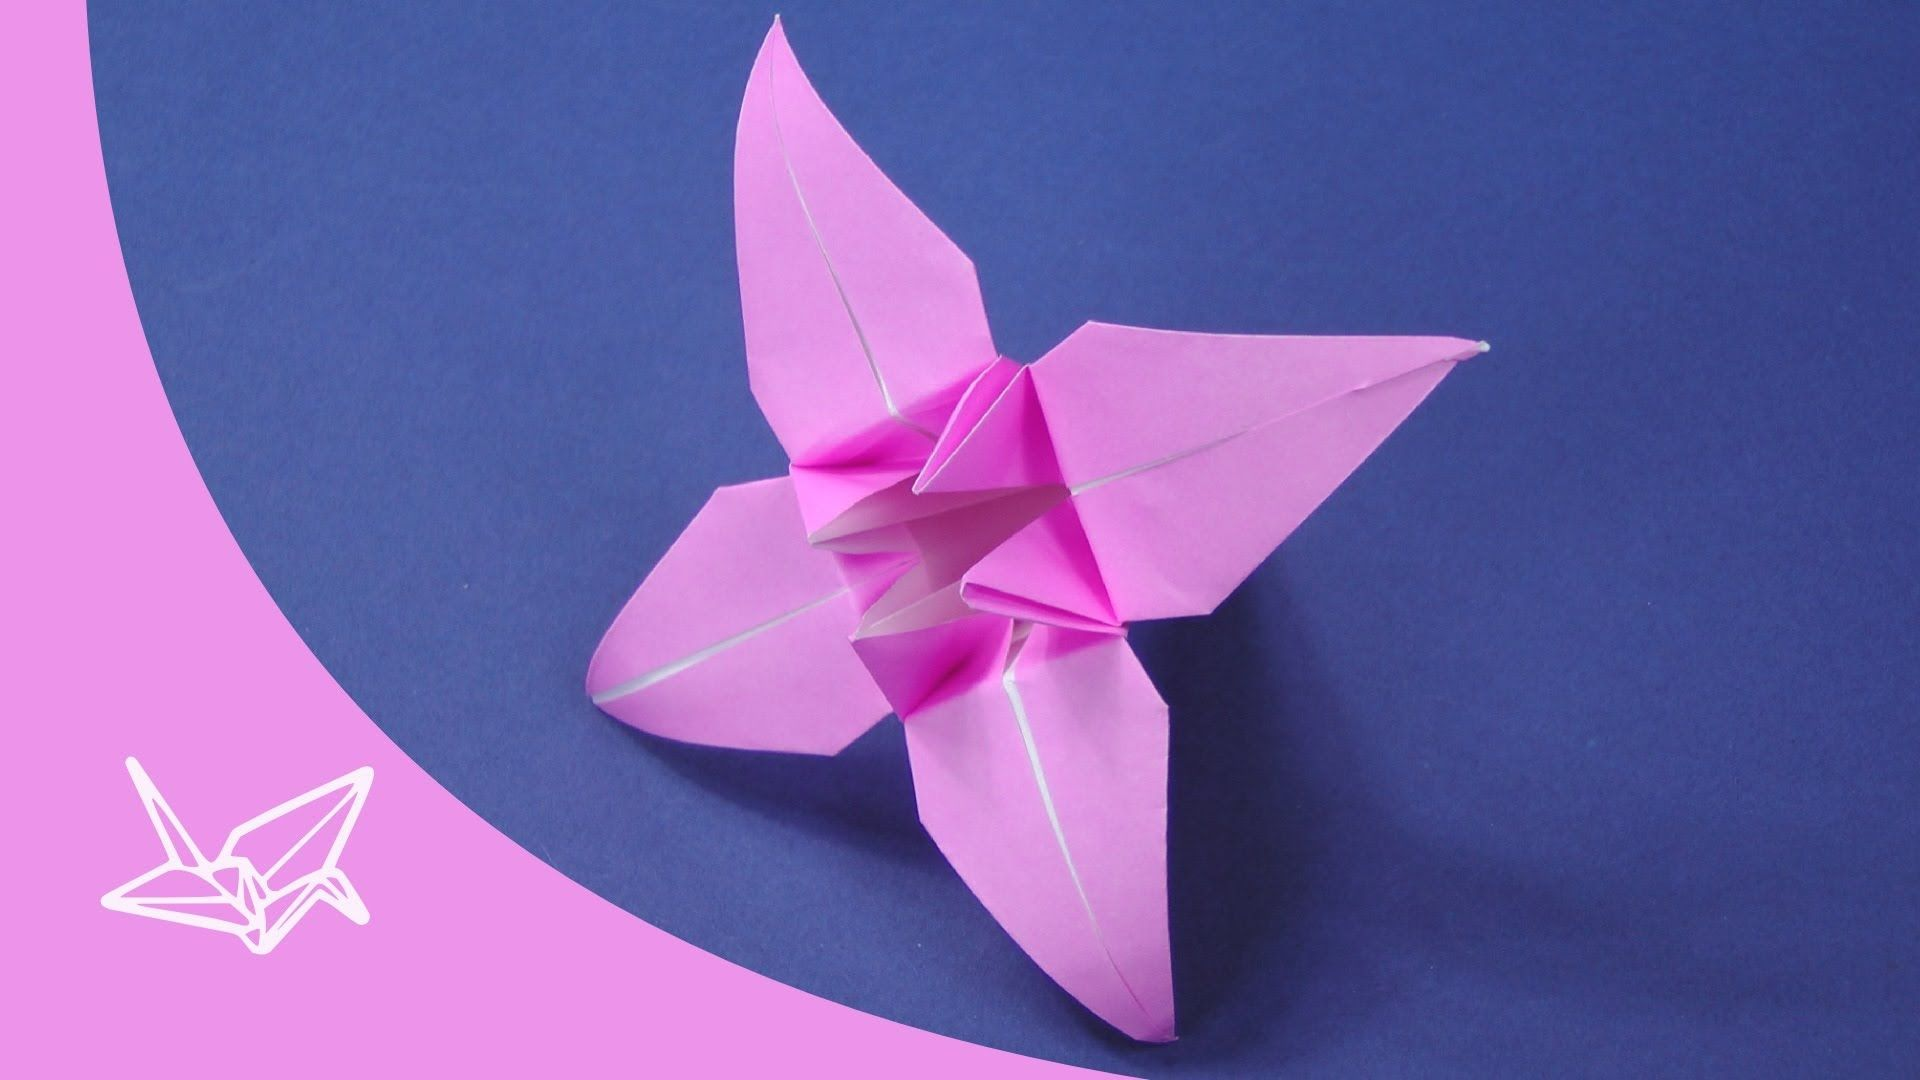 Download video origami flower lily 100th video origami download video origami flower lily 100th video origami flower and learning jeuxipadfo Image collections